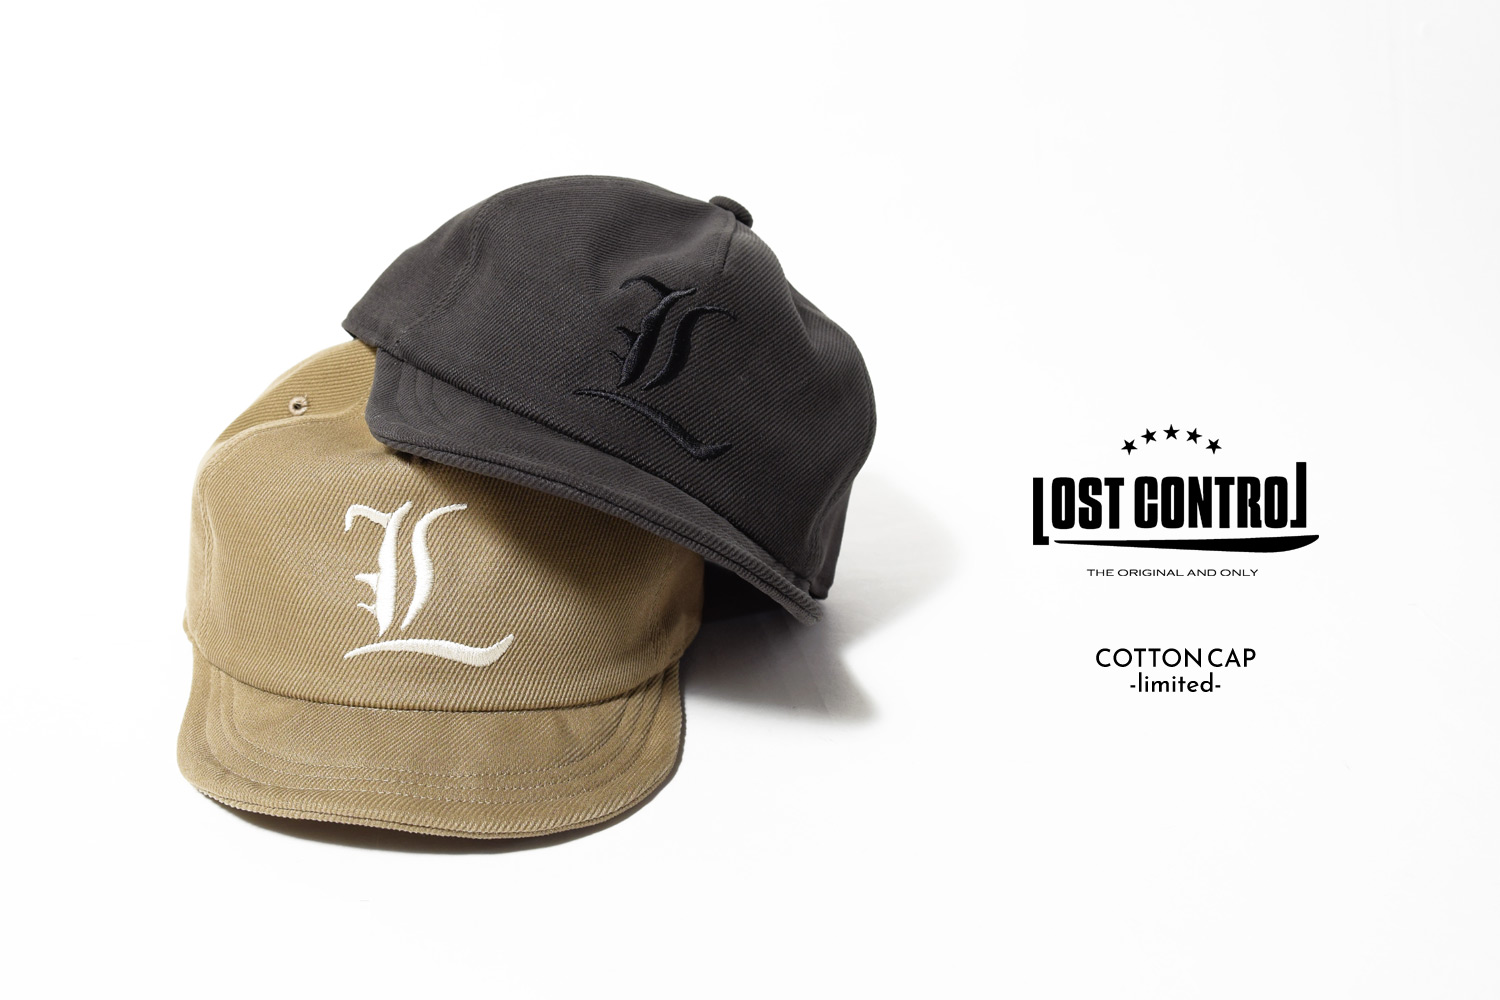 COTTON CAP -limited-